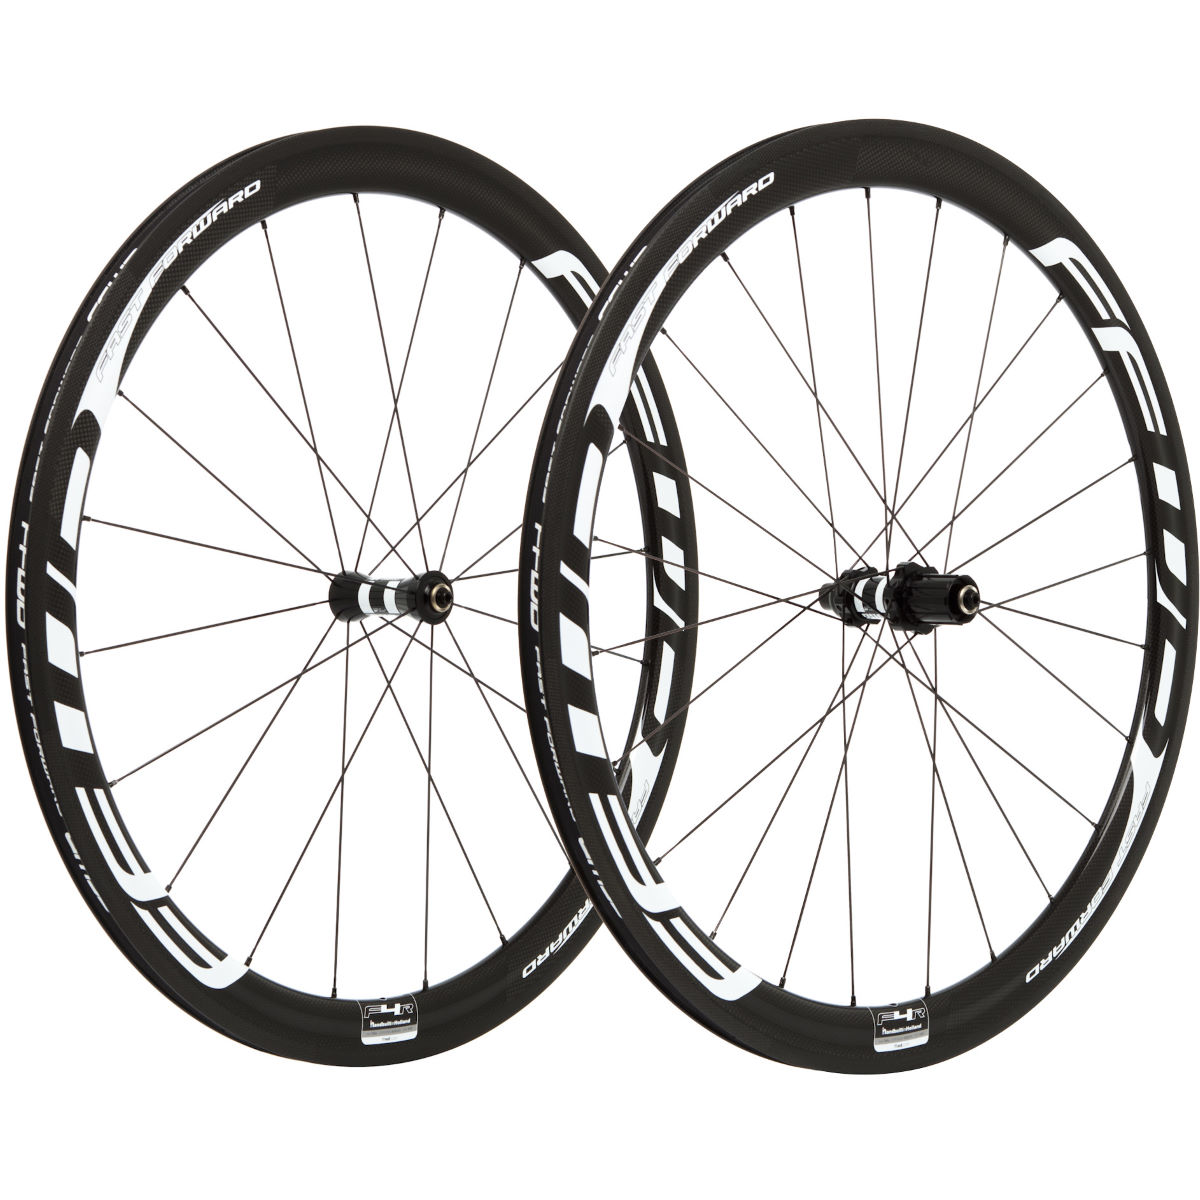 Fast Forward Carbon F4R FCC TLR 45mm SP Wheelset Performance Wheels